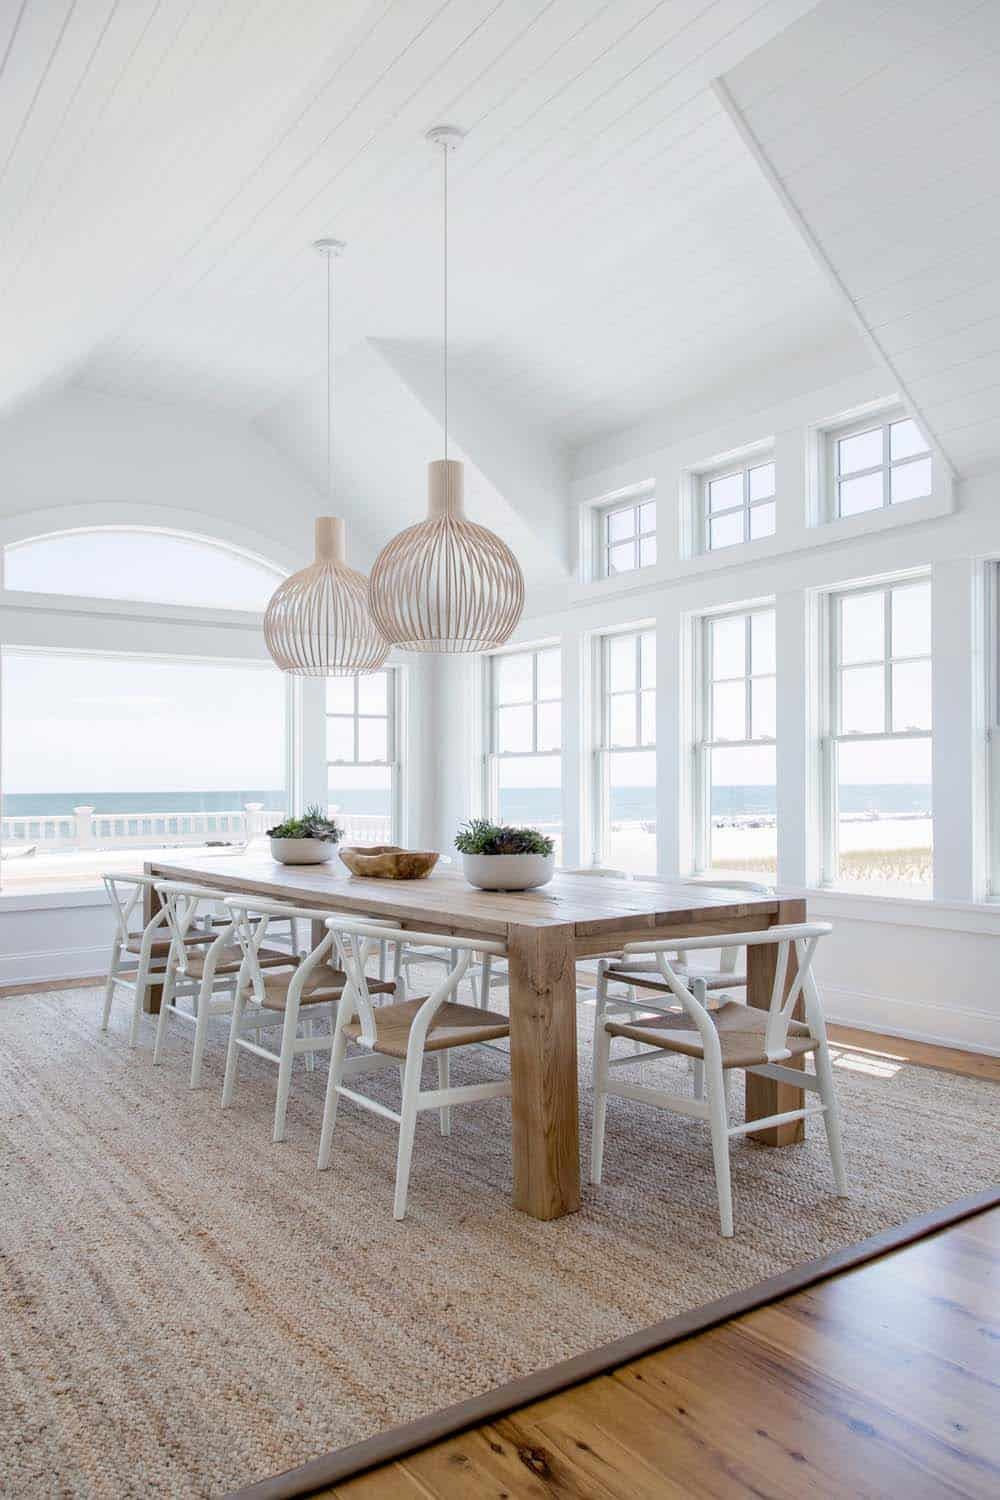 Coastal-Chic Beach Home-Chango Co-07-1 Kindesign